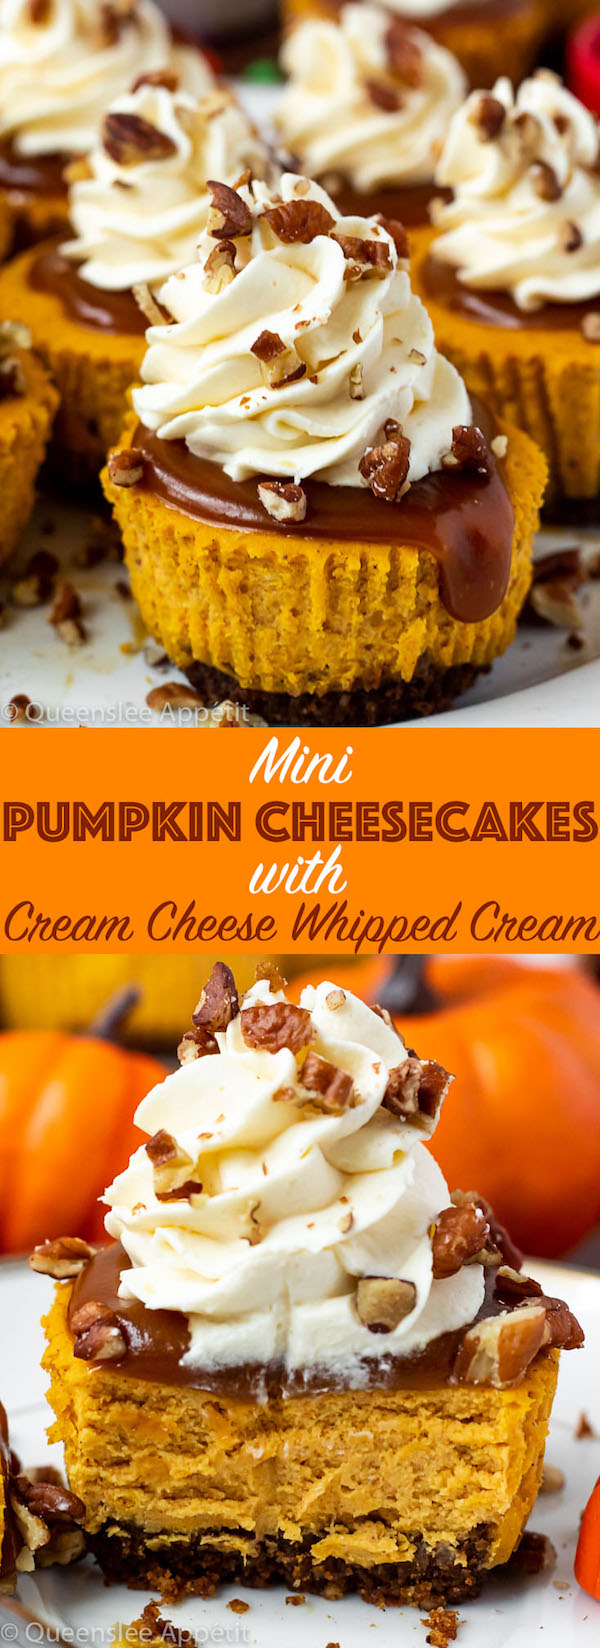 An easy recipe for Mini Pumpkin Cheesecakes, featuring a spiced gingersnap pecan crust and a smooth and creamy pumpkin cheesecake filling. Top these bite sized treats off with salted caramel sauce, cream cheese whipped cream and chopped pecans and you have the perfect Thanksgiving dessert!